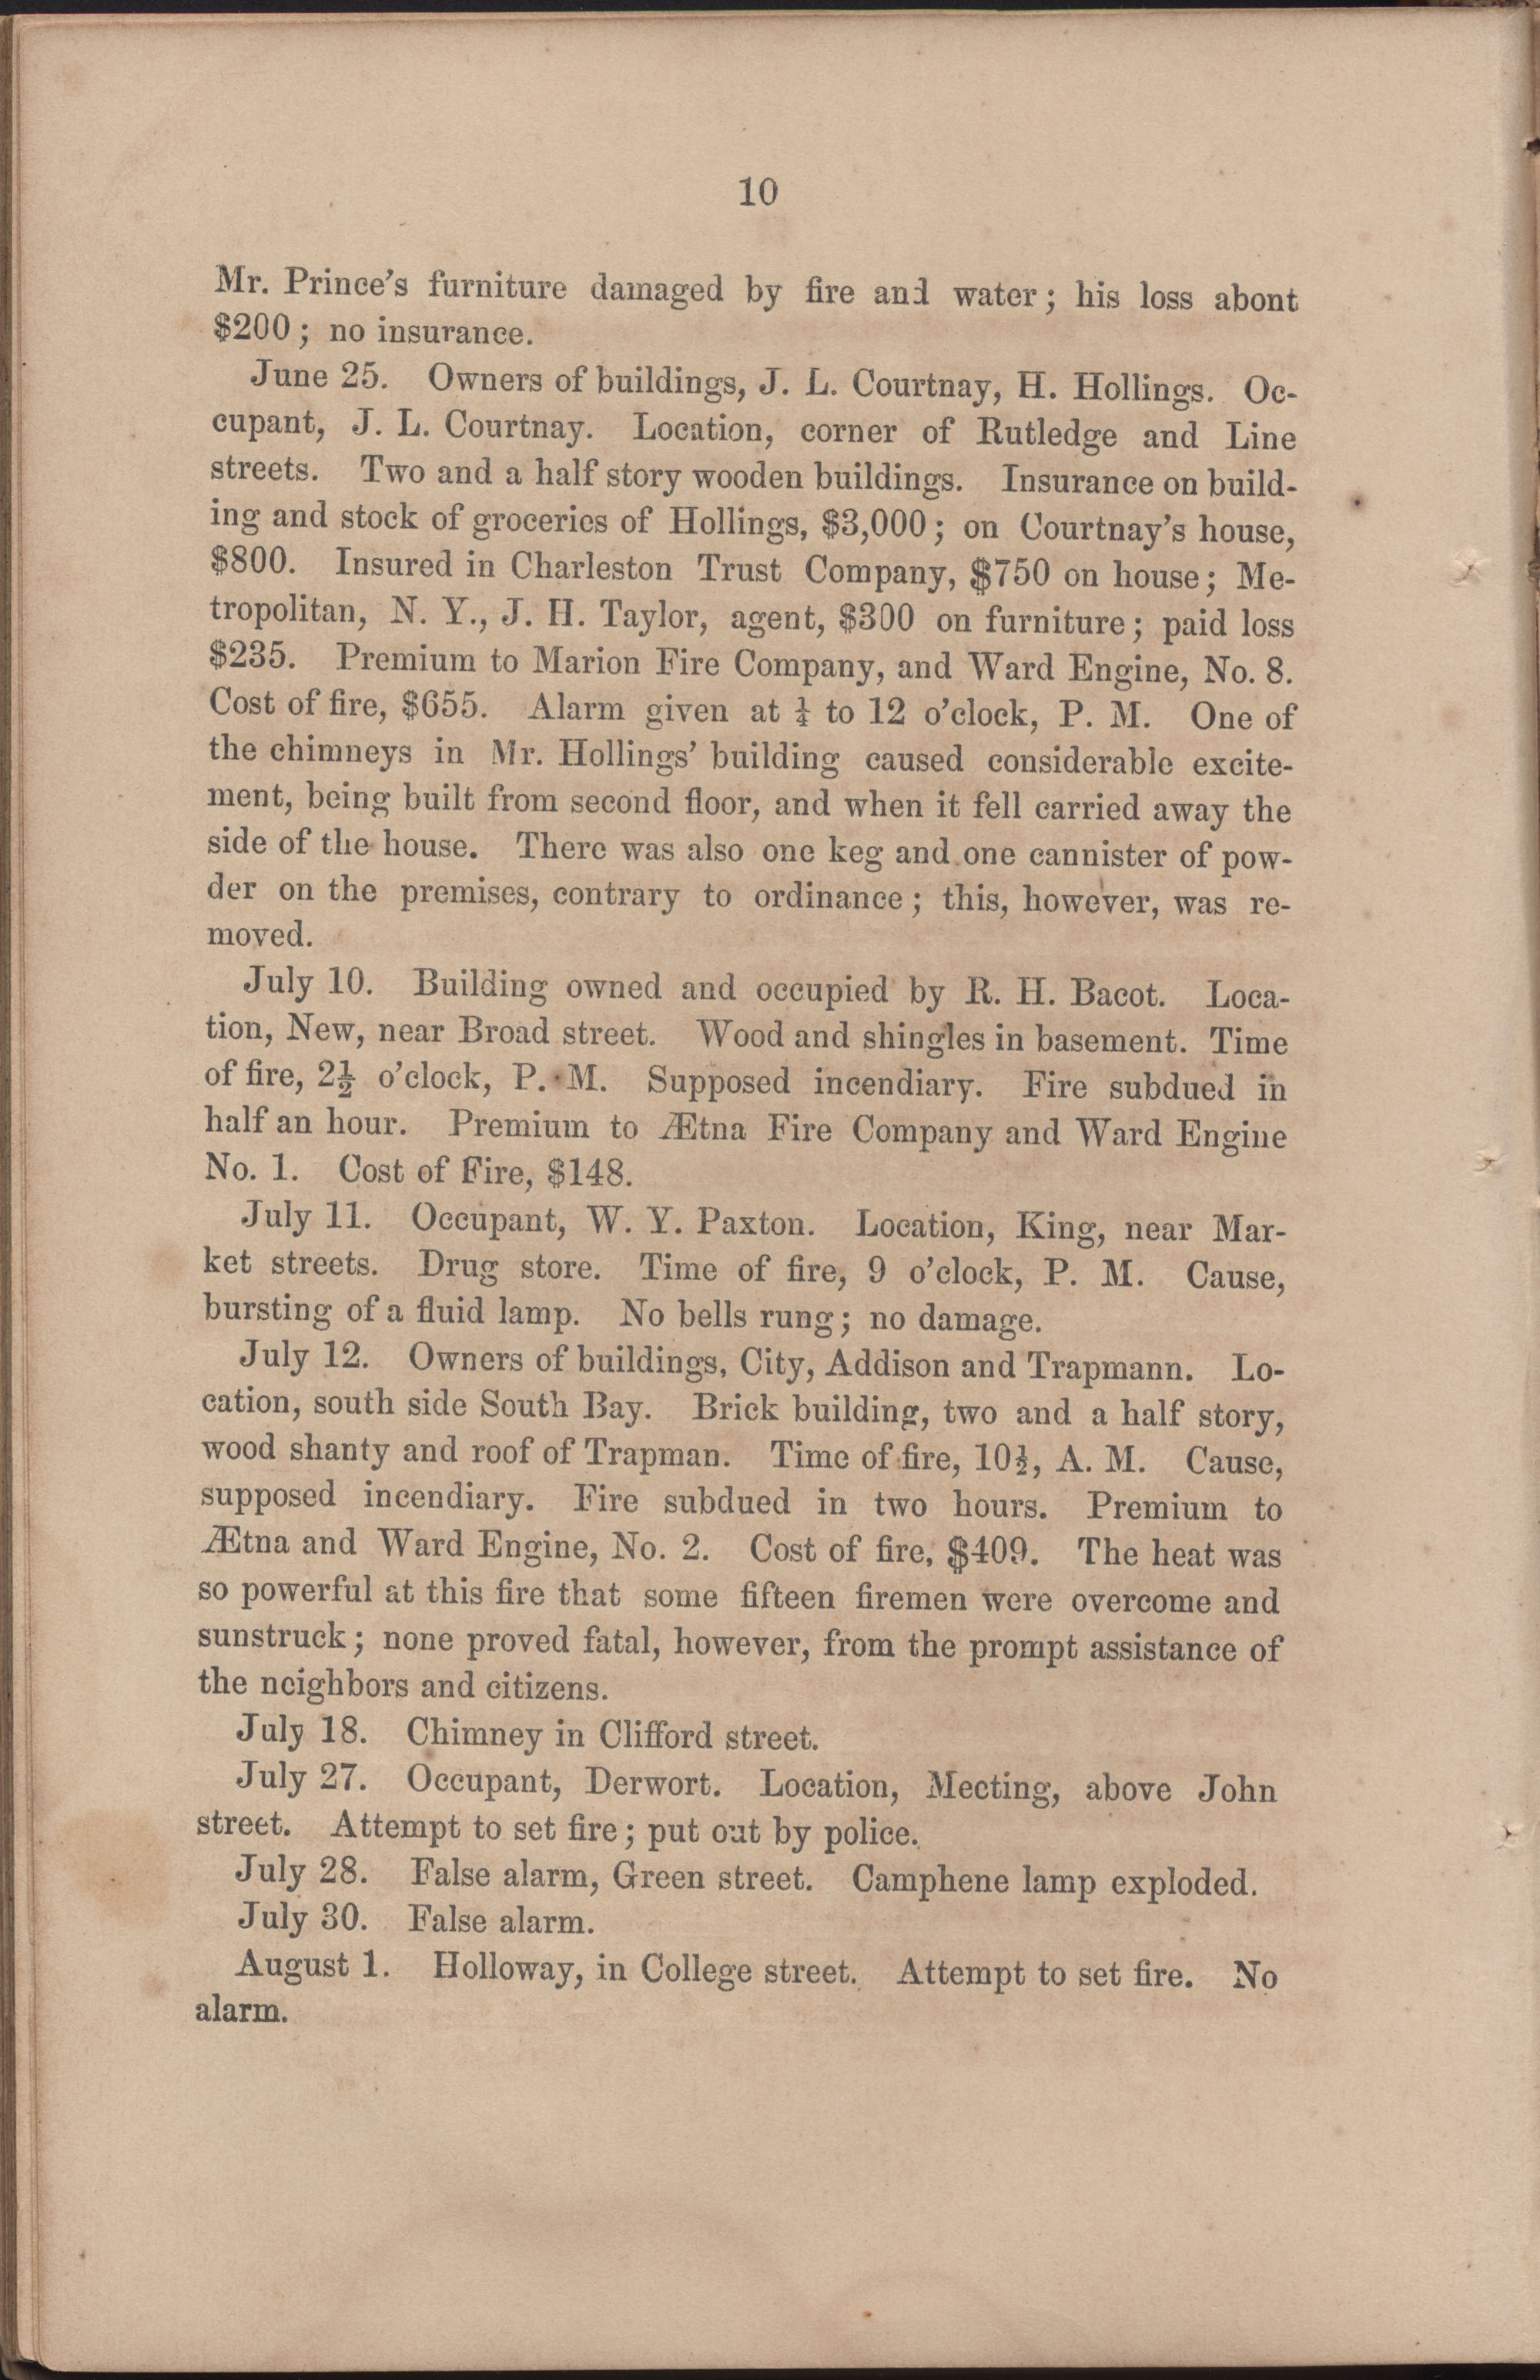 Annual Report of the Chief of the Fire Department of the City of Charleston, page 71